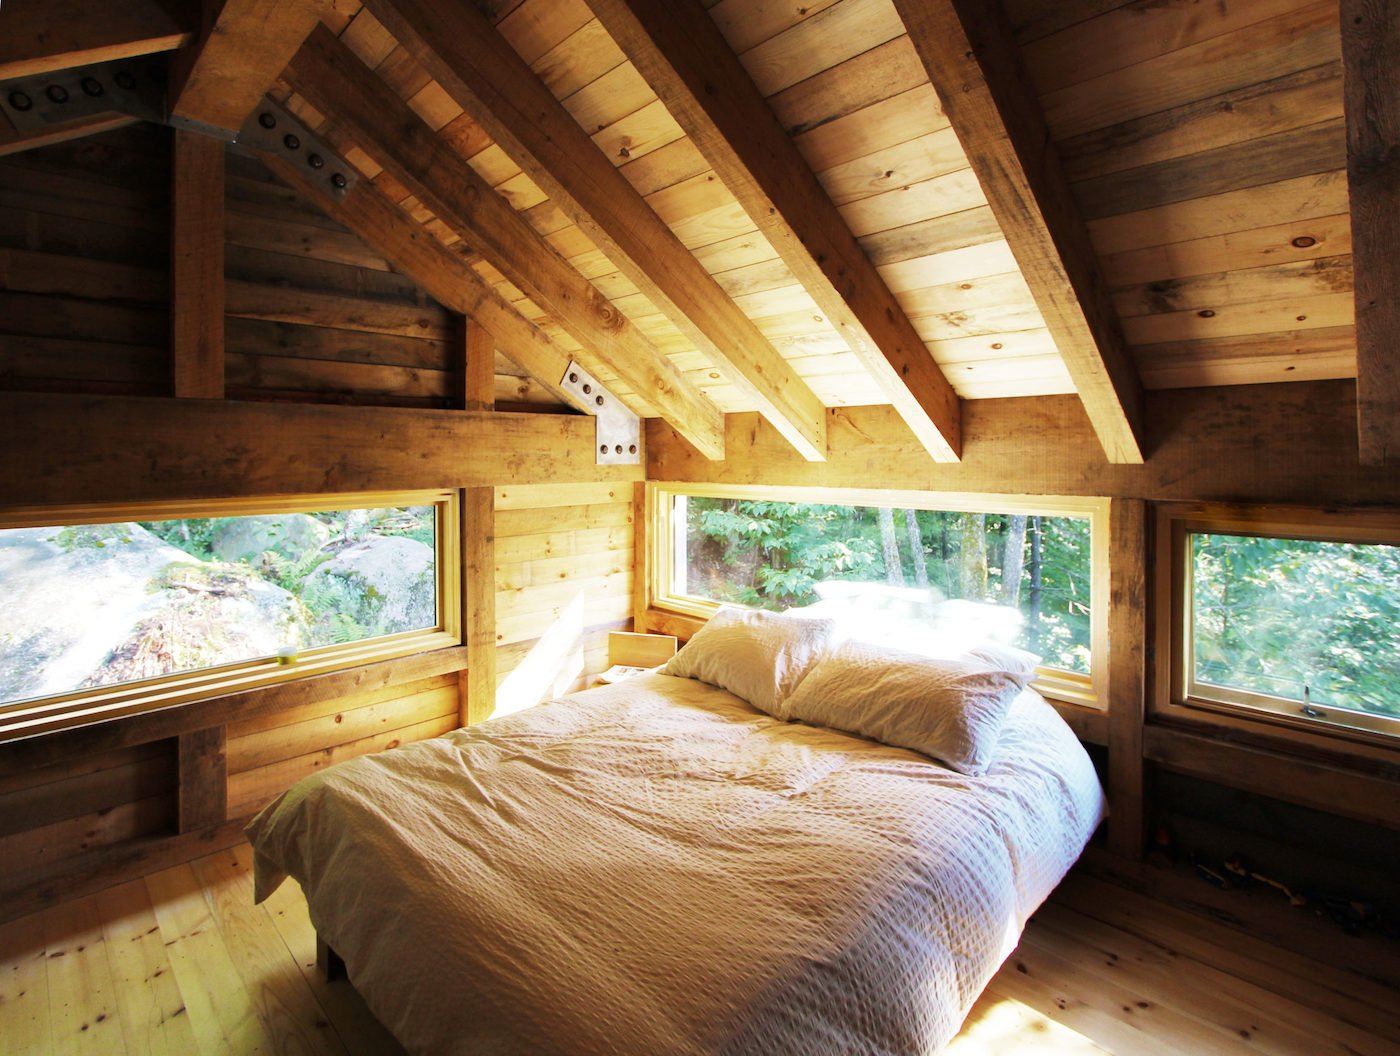 Loft bedroom with timber floor and ceiling